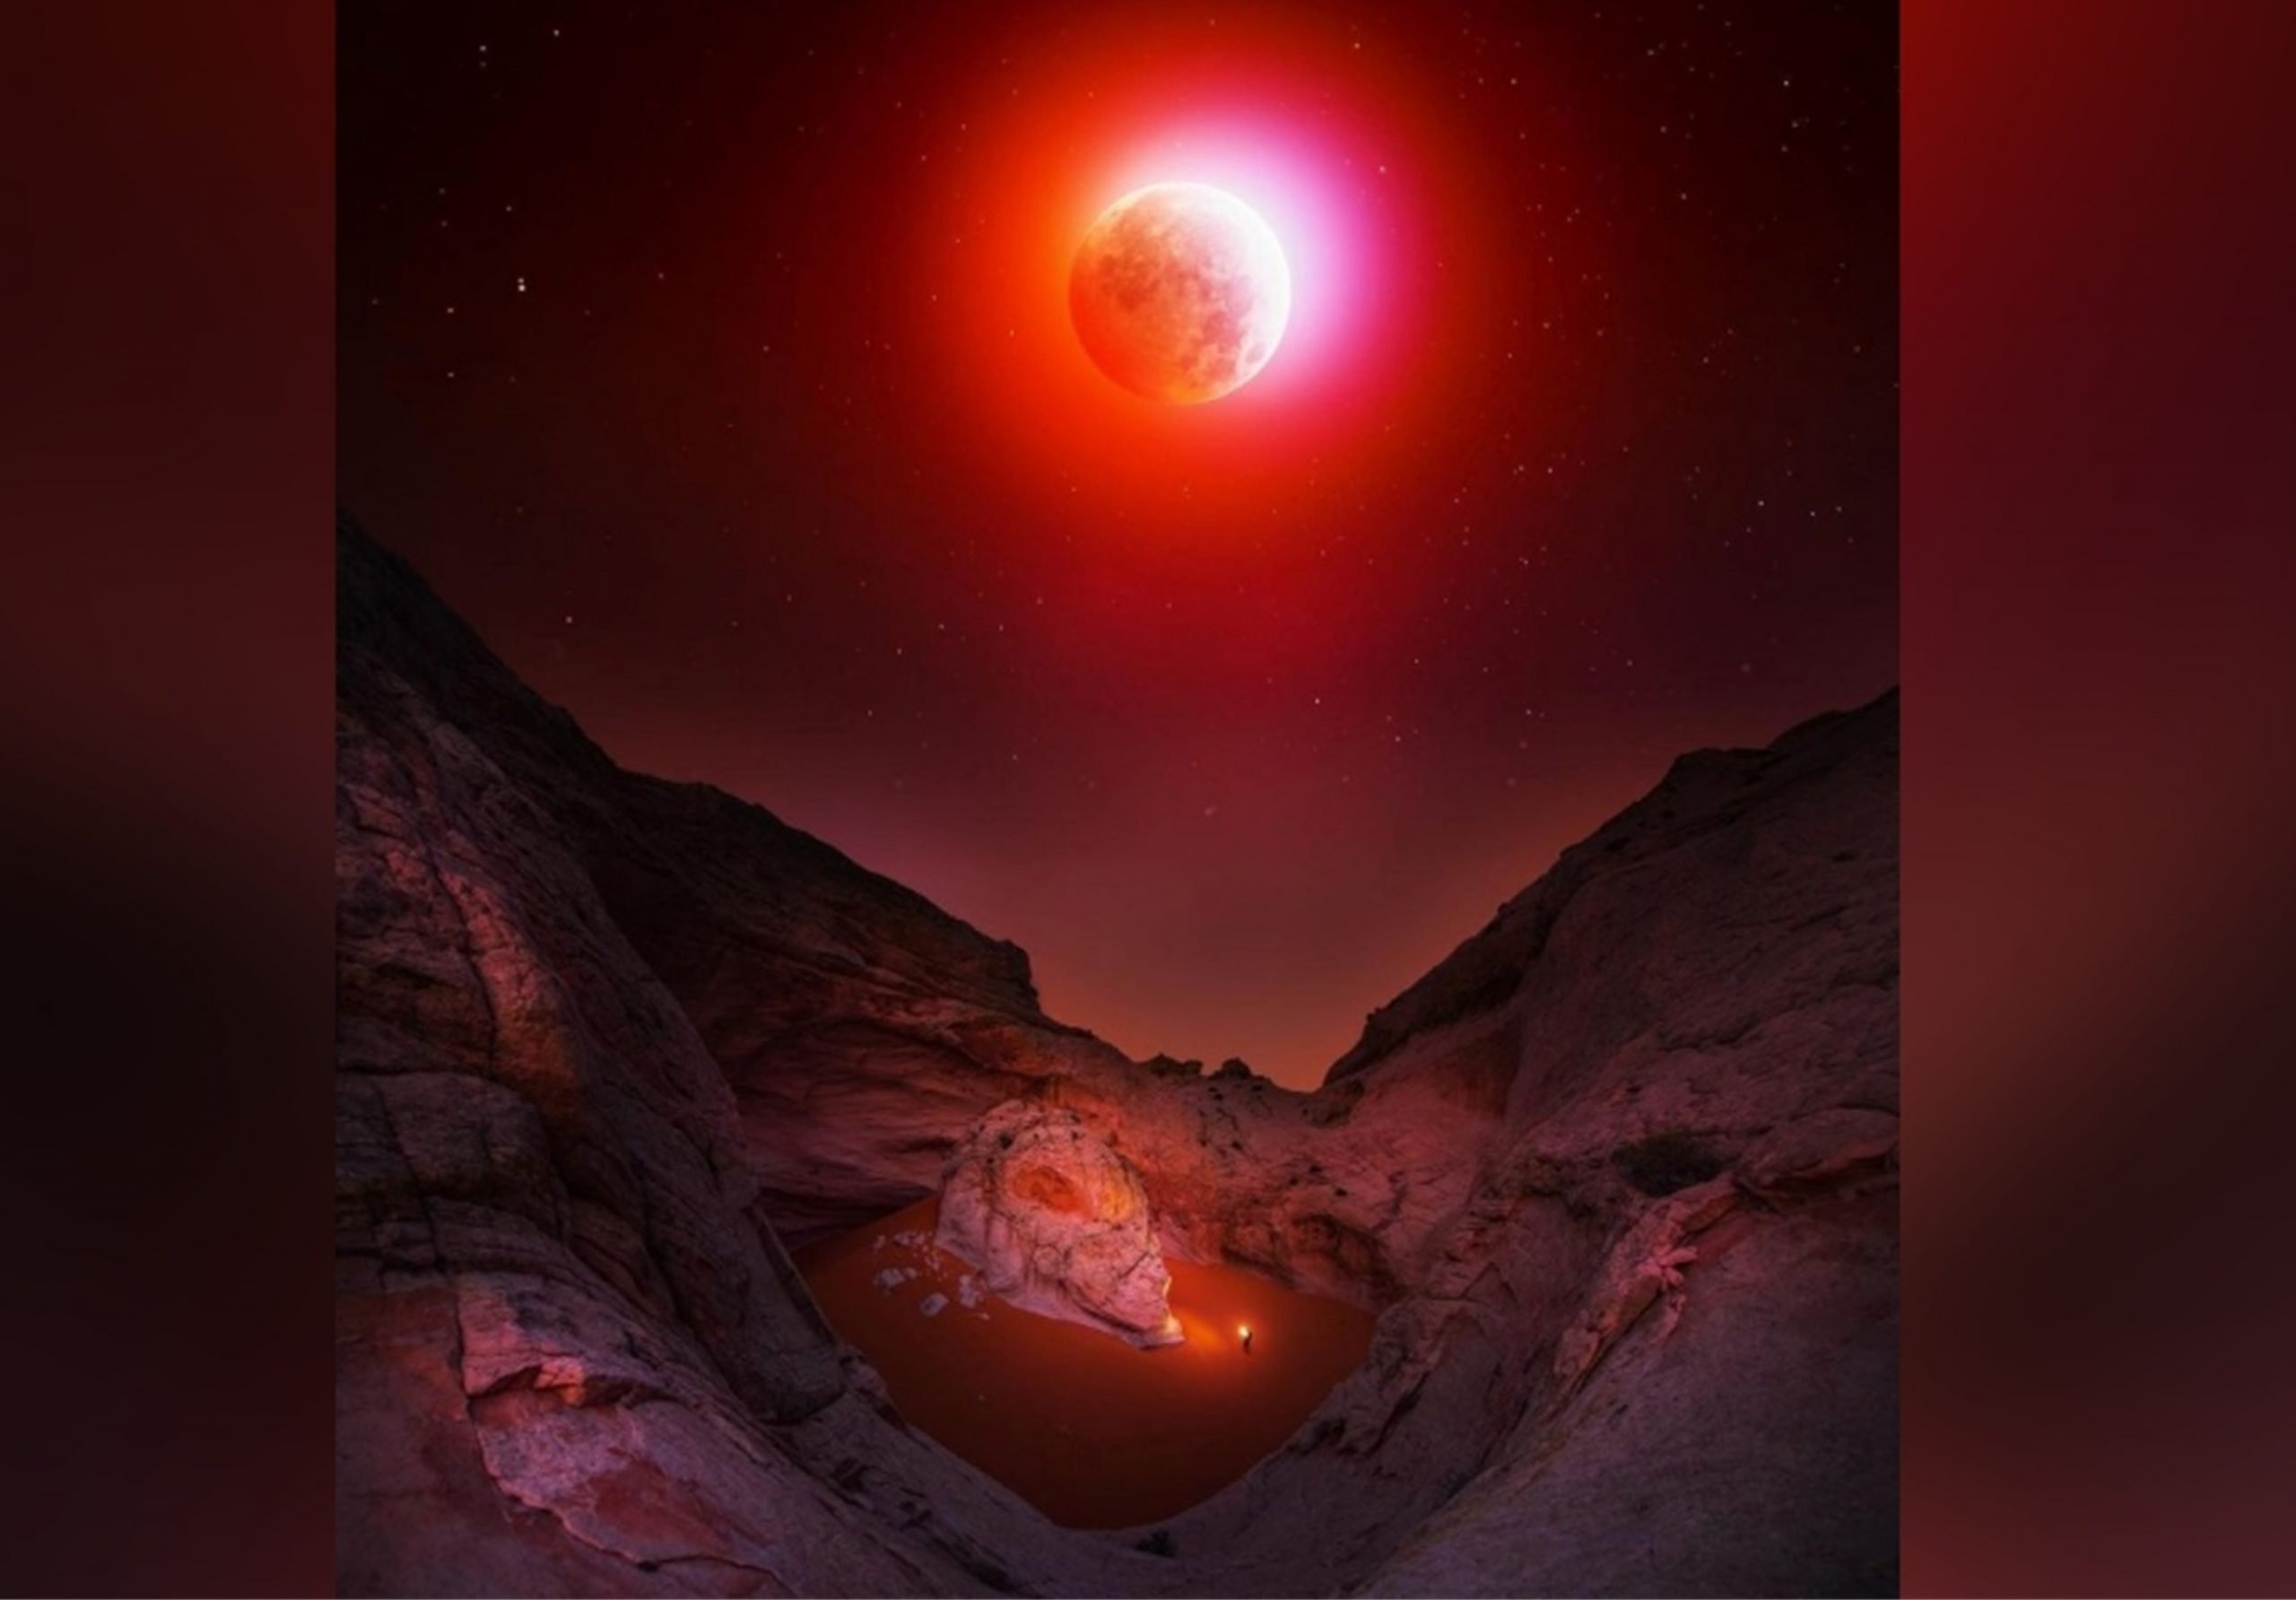 Beautiful picture of the recent Super Flower Blood Moon eclipse